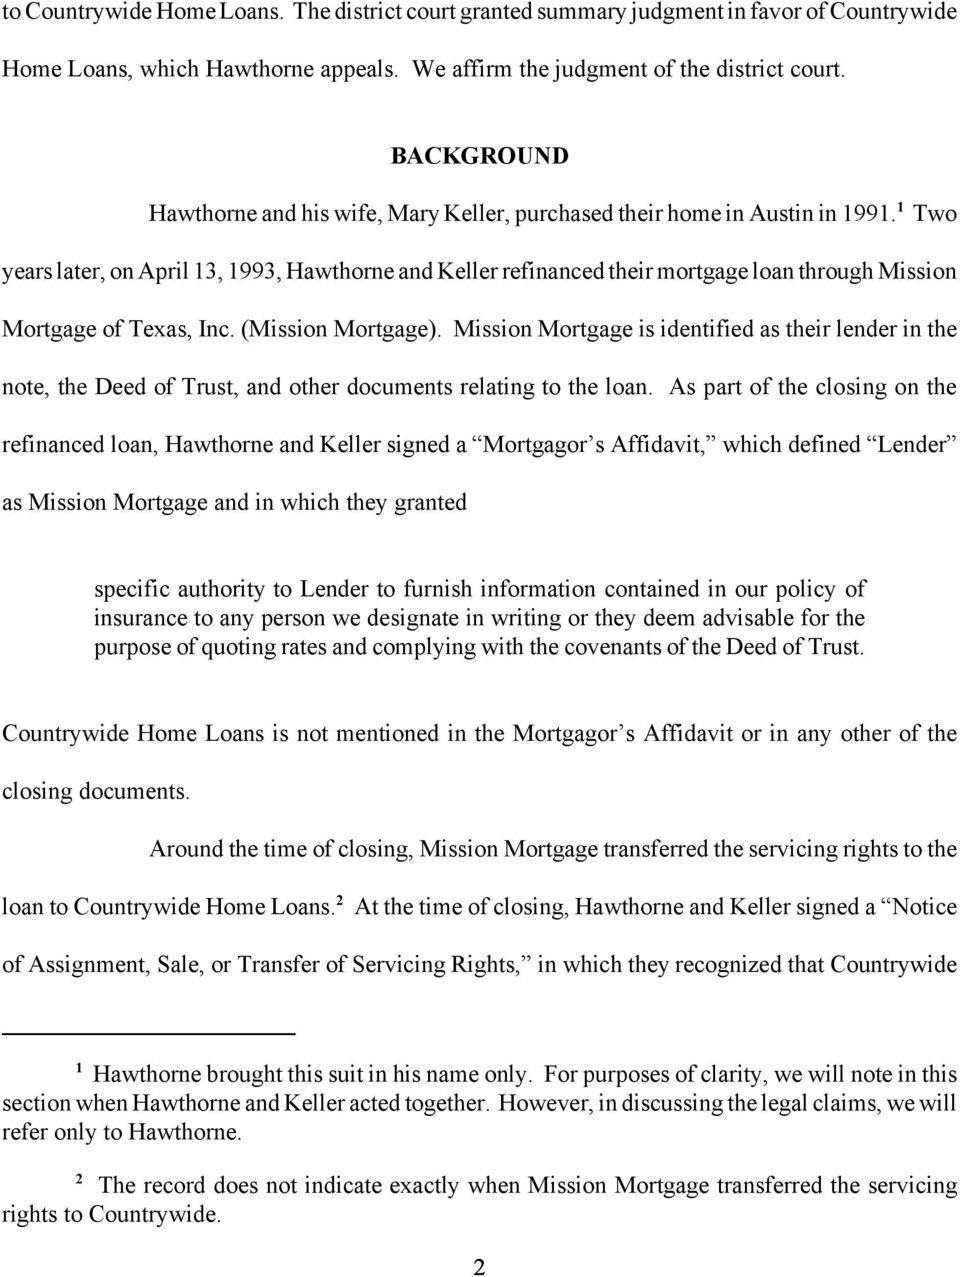 1 Two years later, on April 13, 1993, Hawthorne and Keller refinanced their mortgage loan through Mission Mortgage of Texas, Inc. (Mission Mortgage).